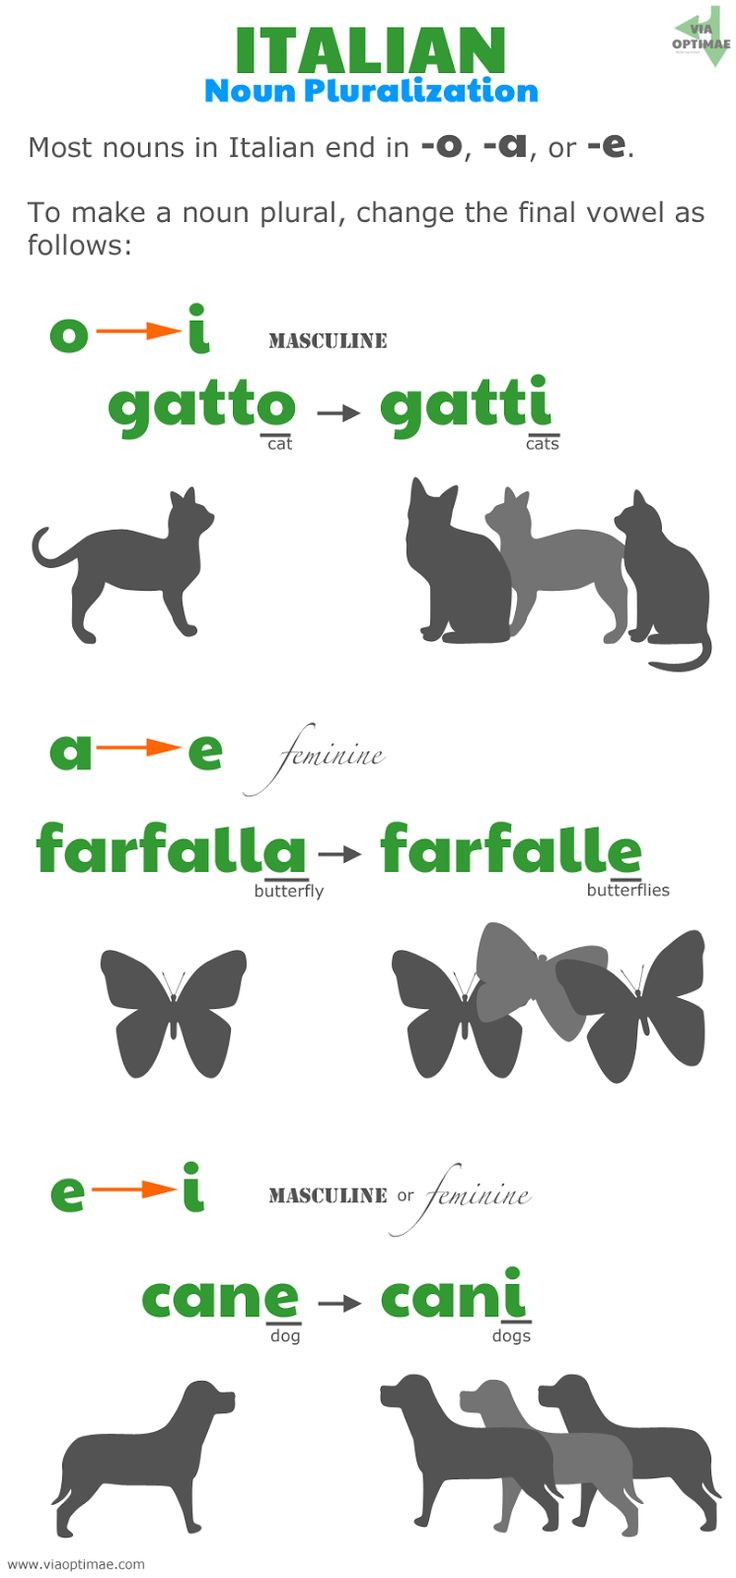 Italian pluralization patterns, Italian plurals: o to i, gatto to gatti; a to e, farfalla to farfalle, e to i, cane to cani; www.viaoptimae....